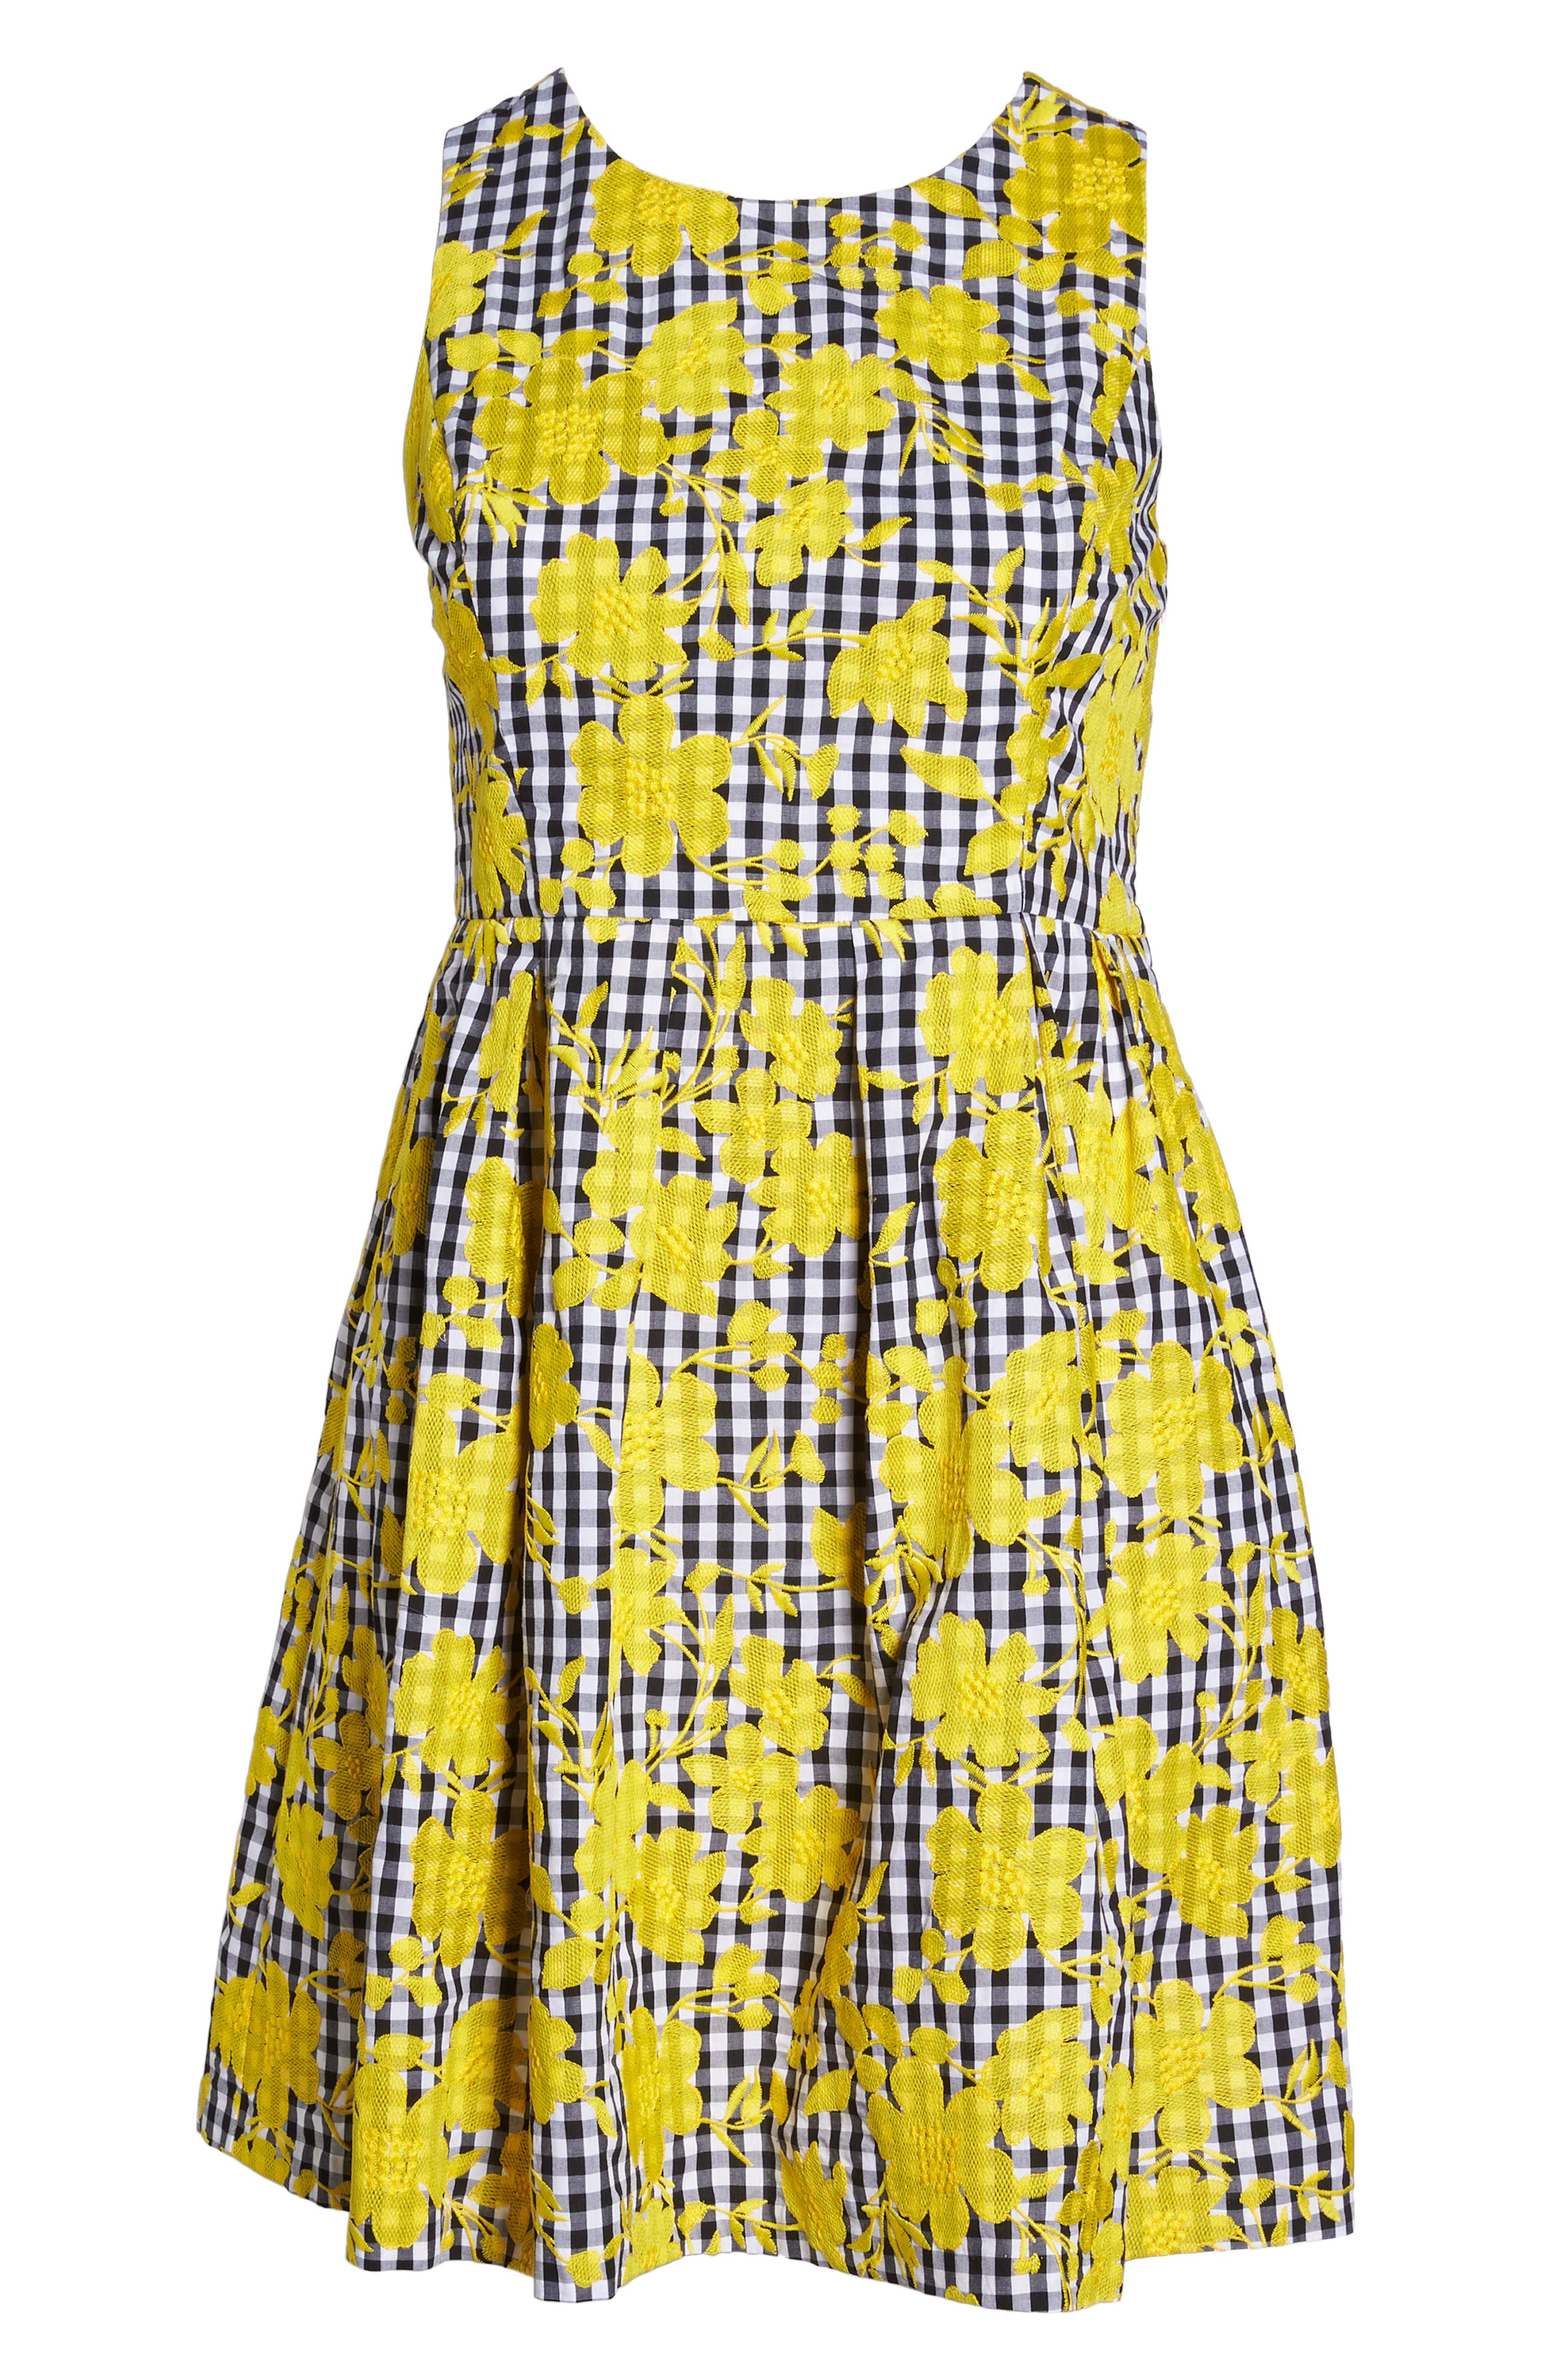 Embroidered Gingham Fit & Flare Dress,                             Alternate thumbnail 7, color,                             700